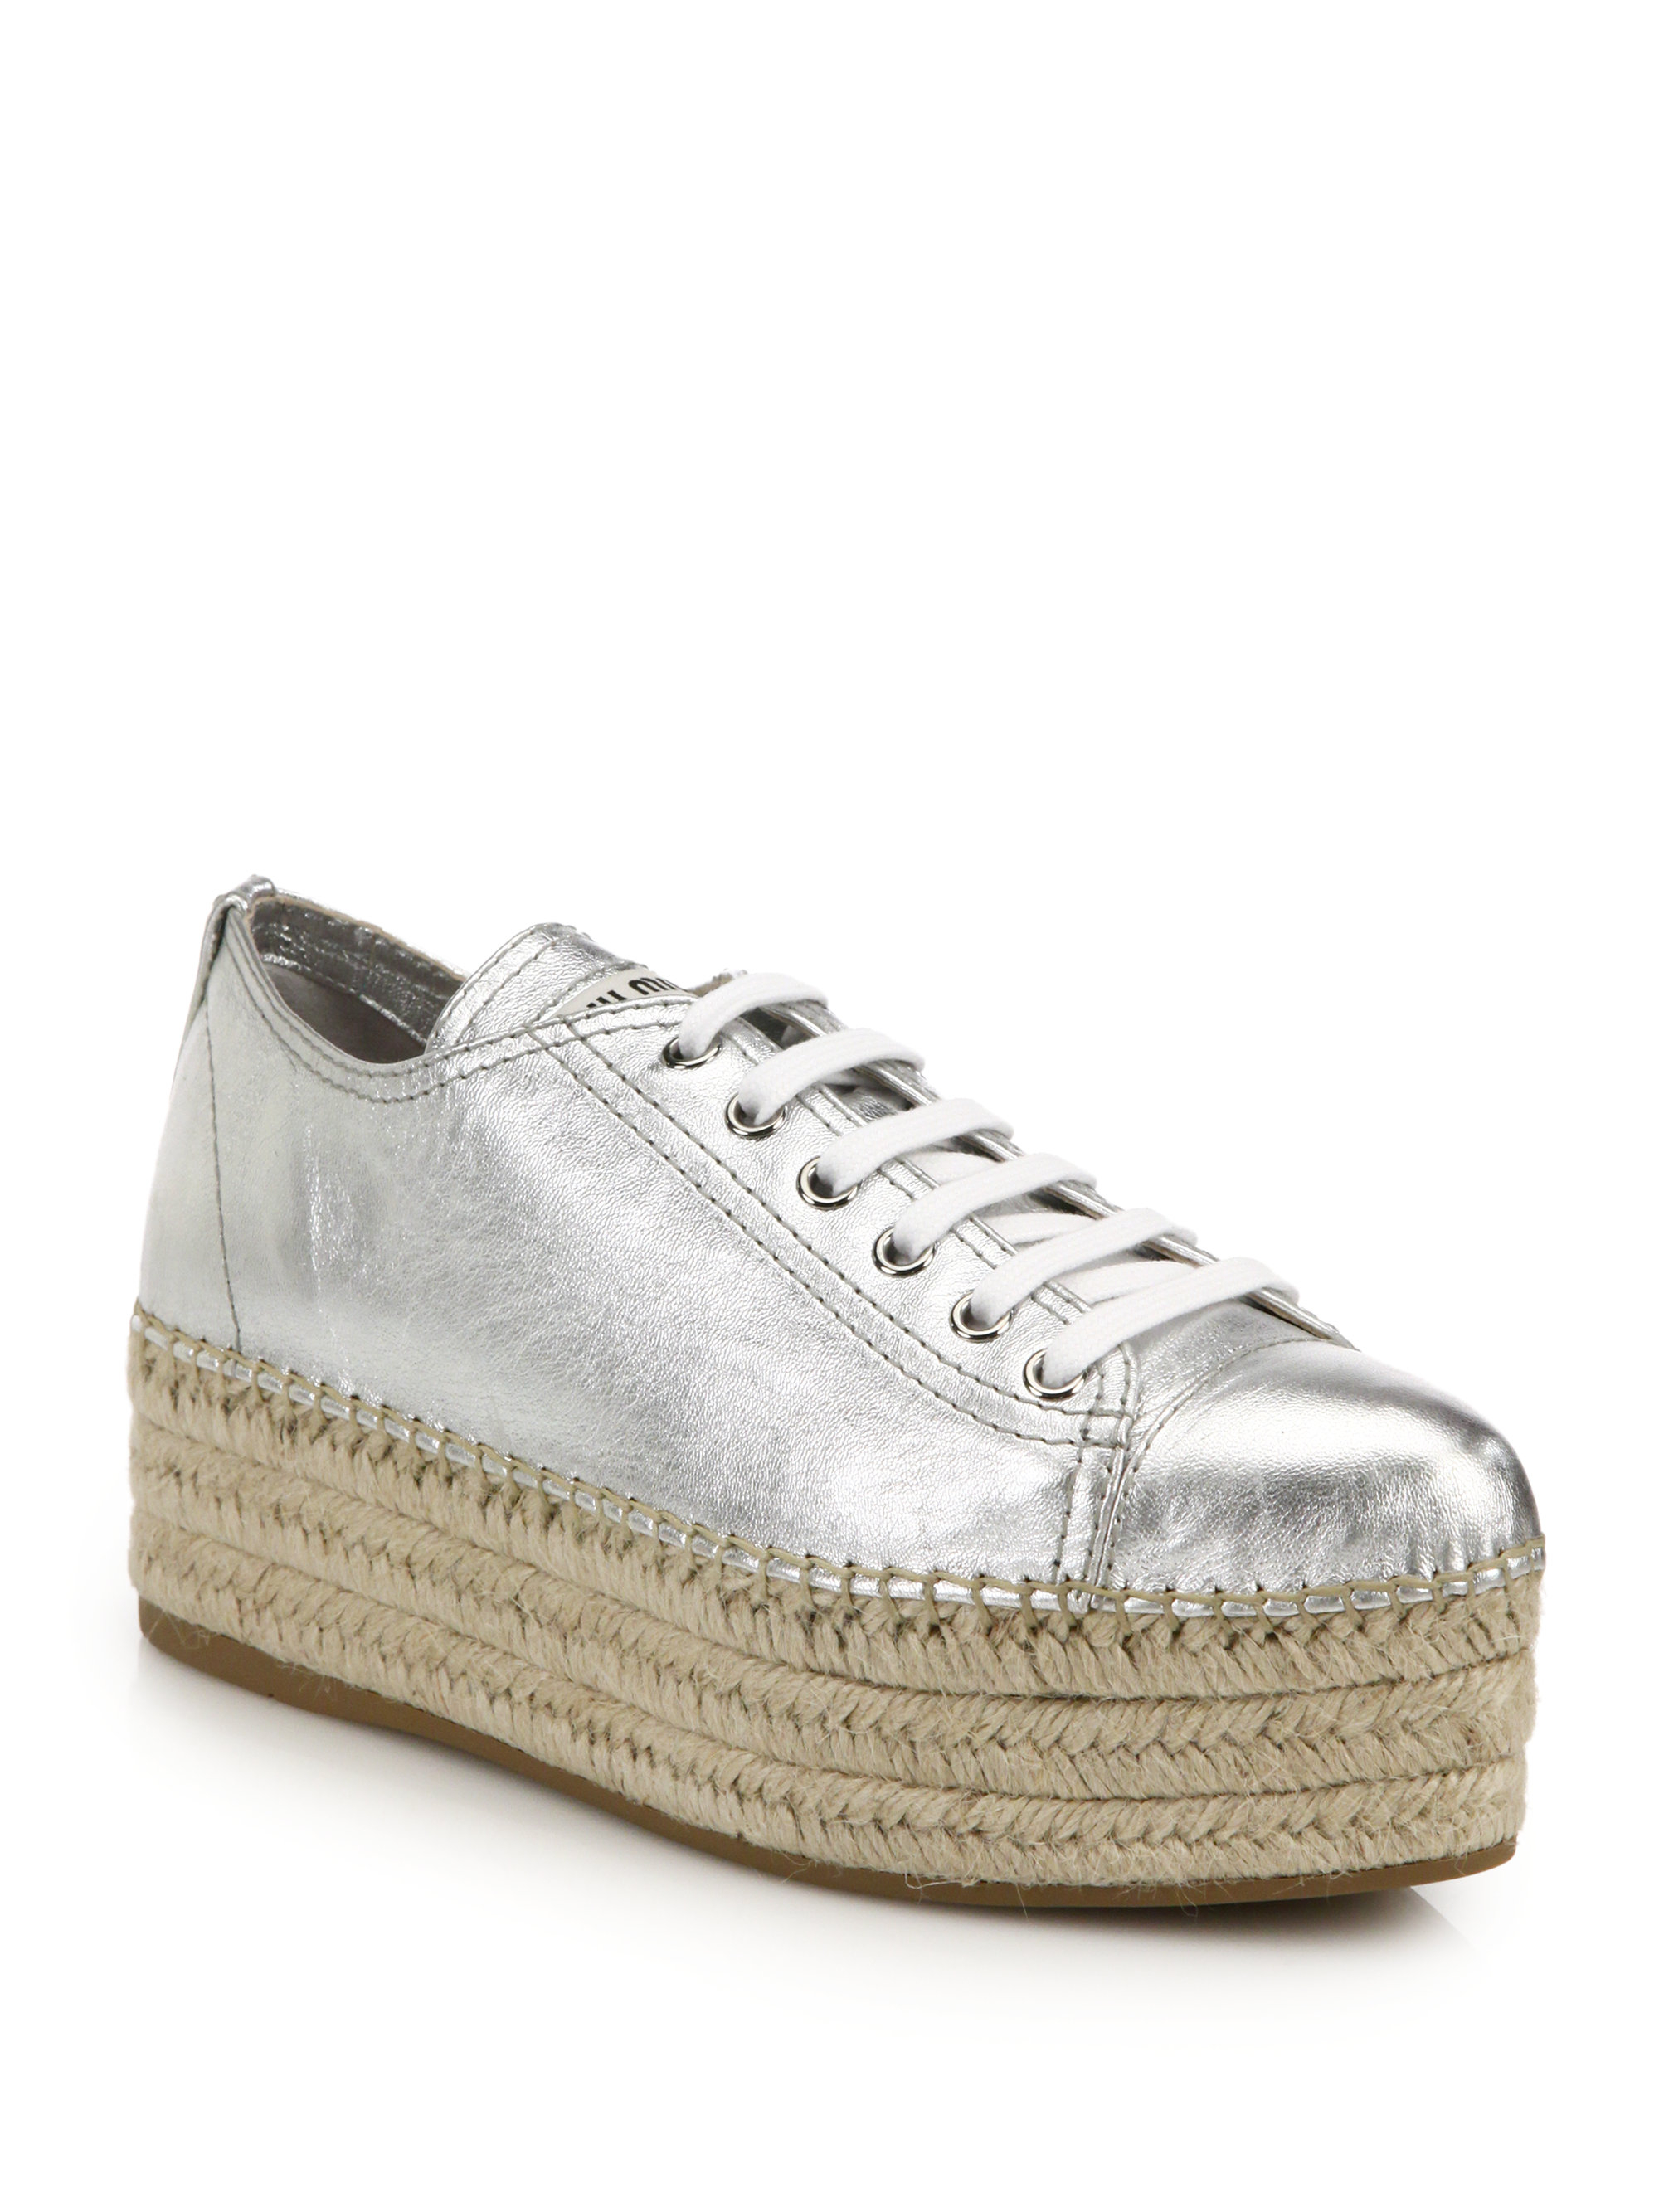 Lyst Miu Miu Metallic Leather Espadrille Platform